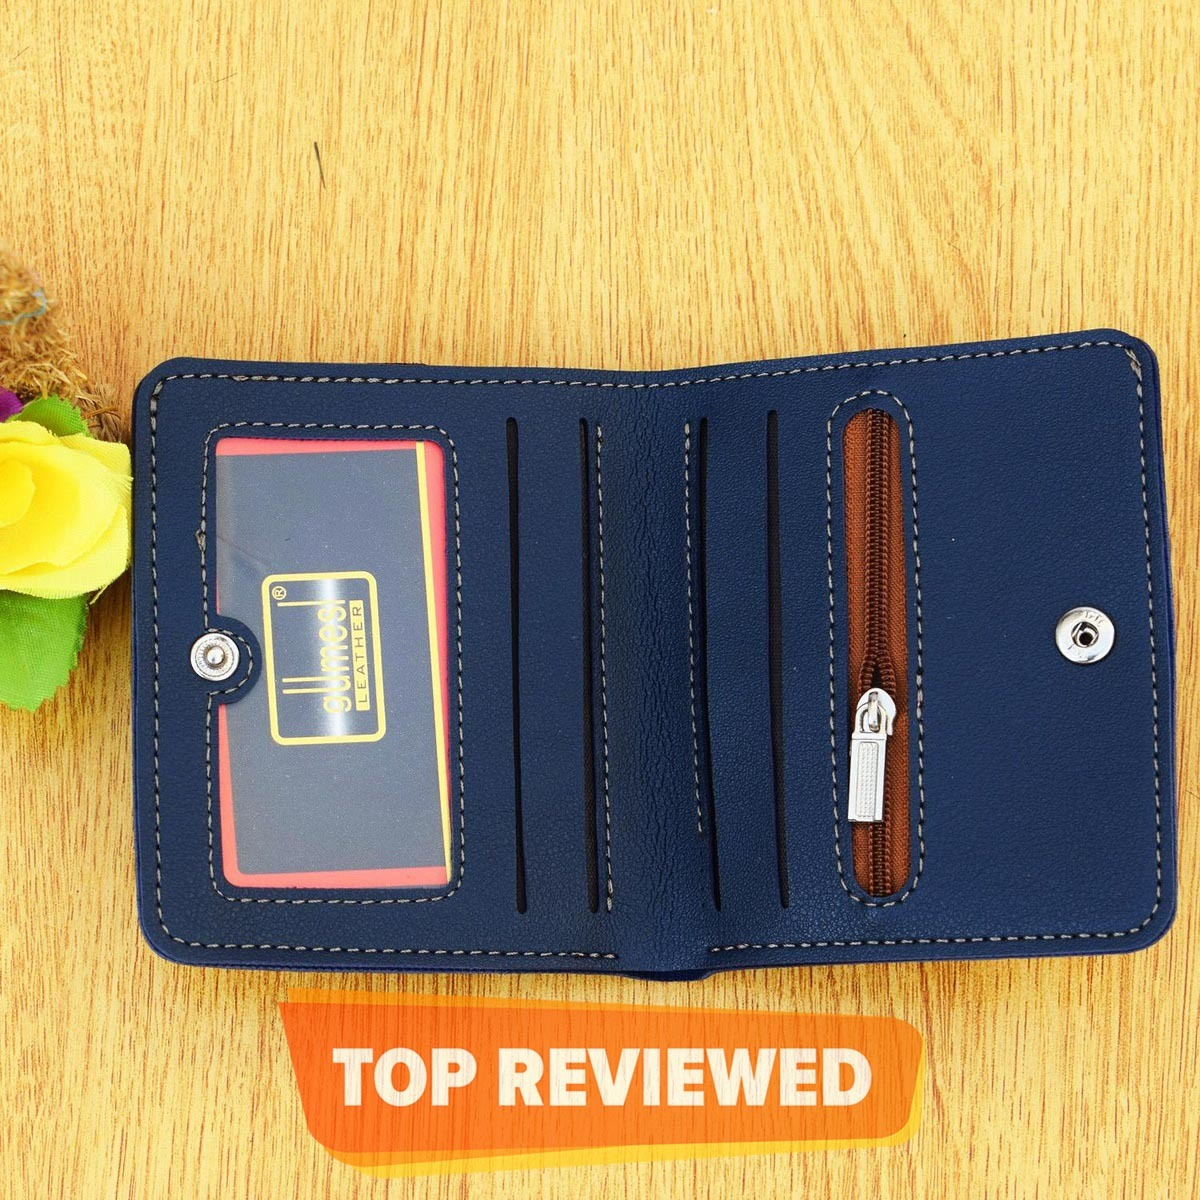 Small Stylish Handy Wallet with Coin Pocket for Unisex